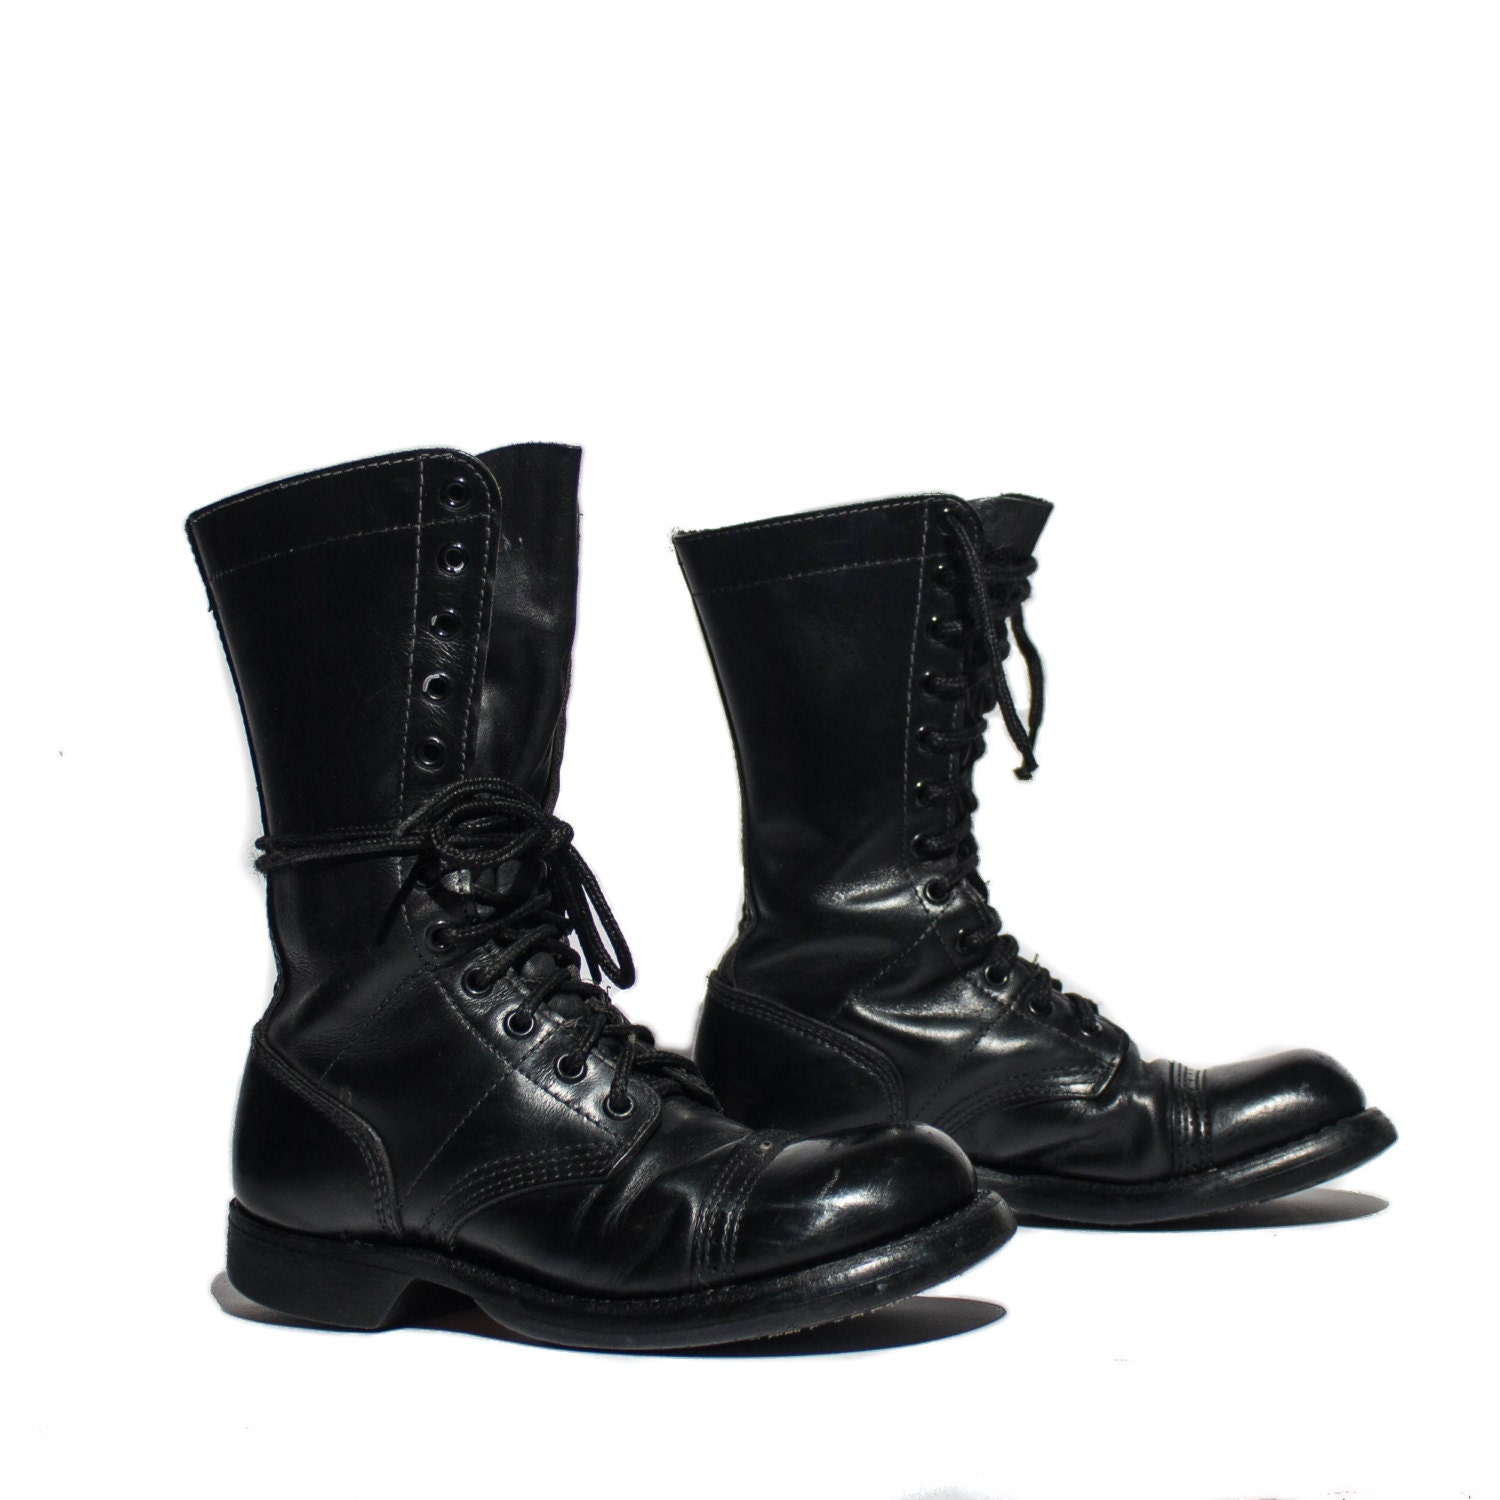 5 1 2 m s corcoran jump boots black paratrooper by